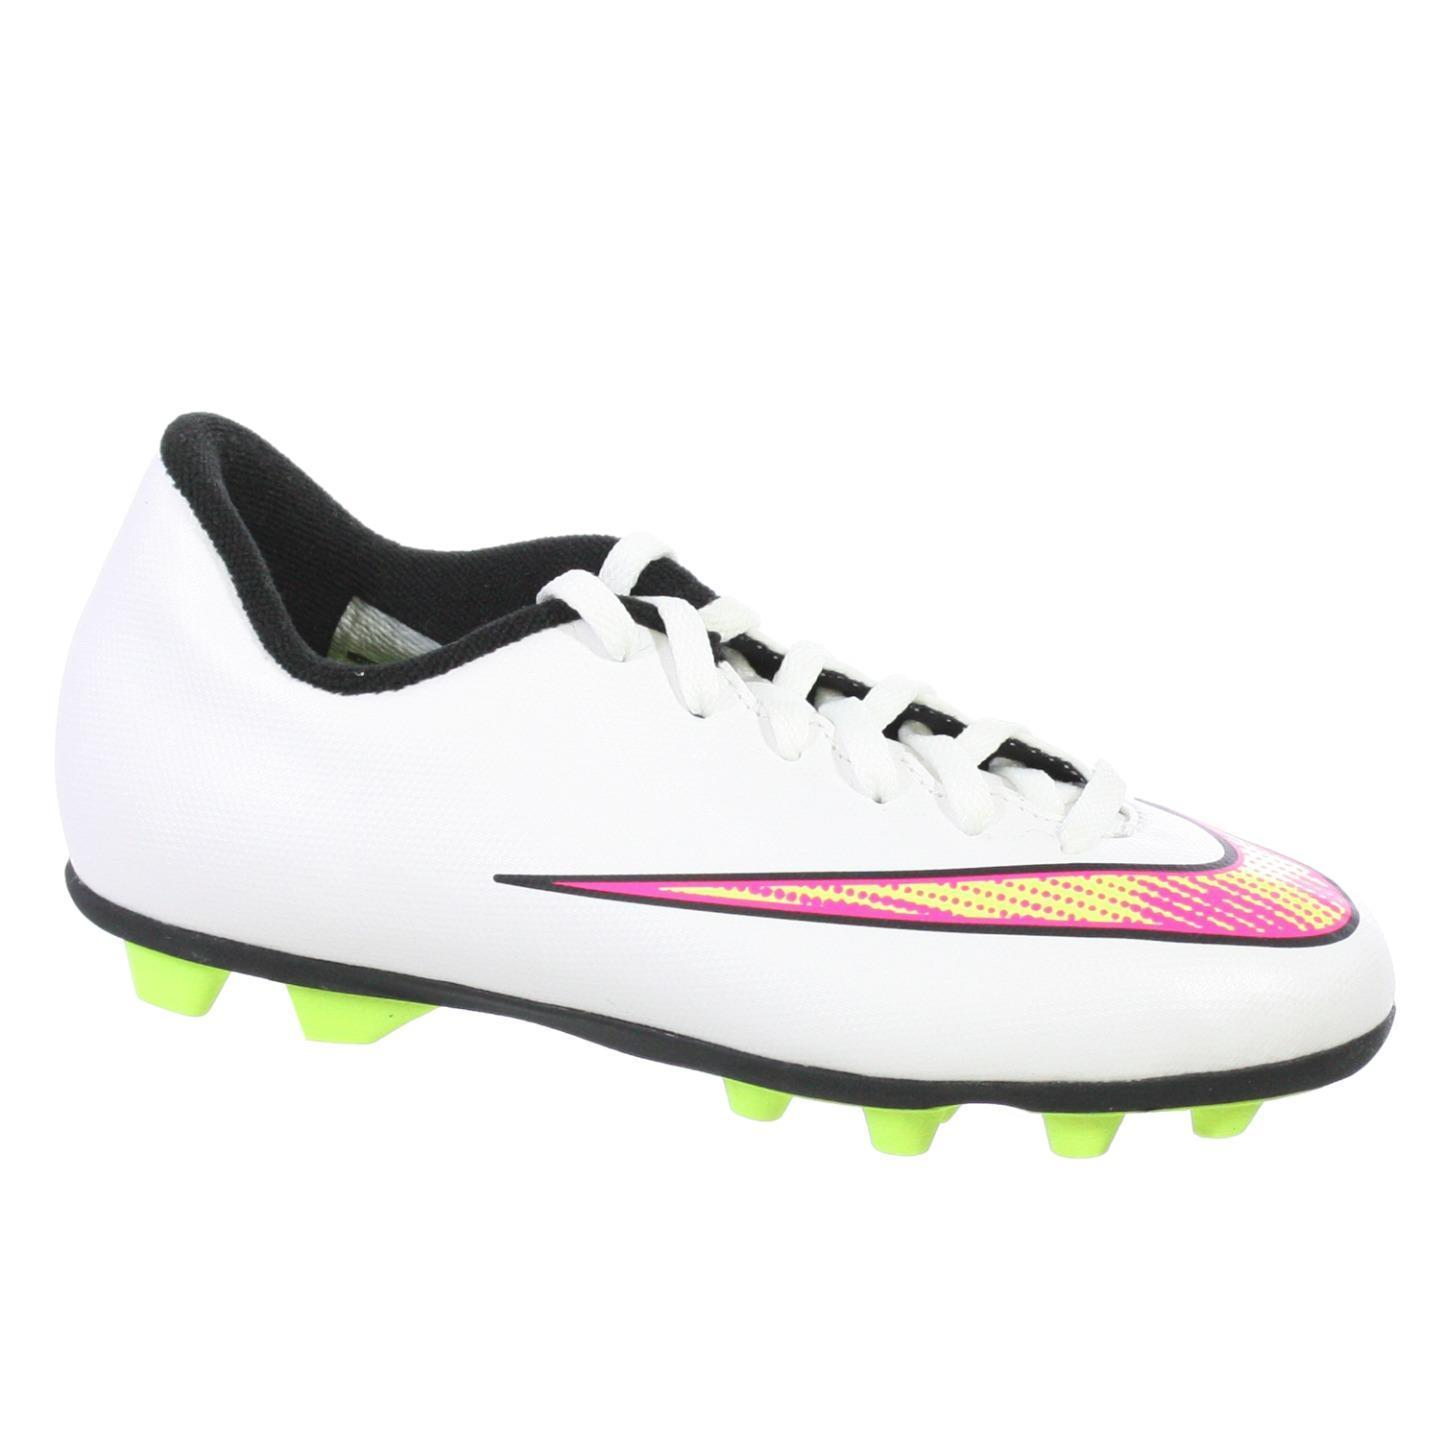 Nike JR Mercurial Vortex II FG-R Youth Soccer Cleat (1.5)...